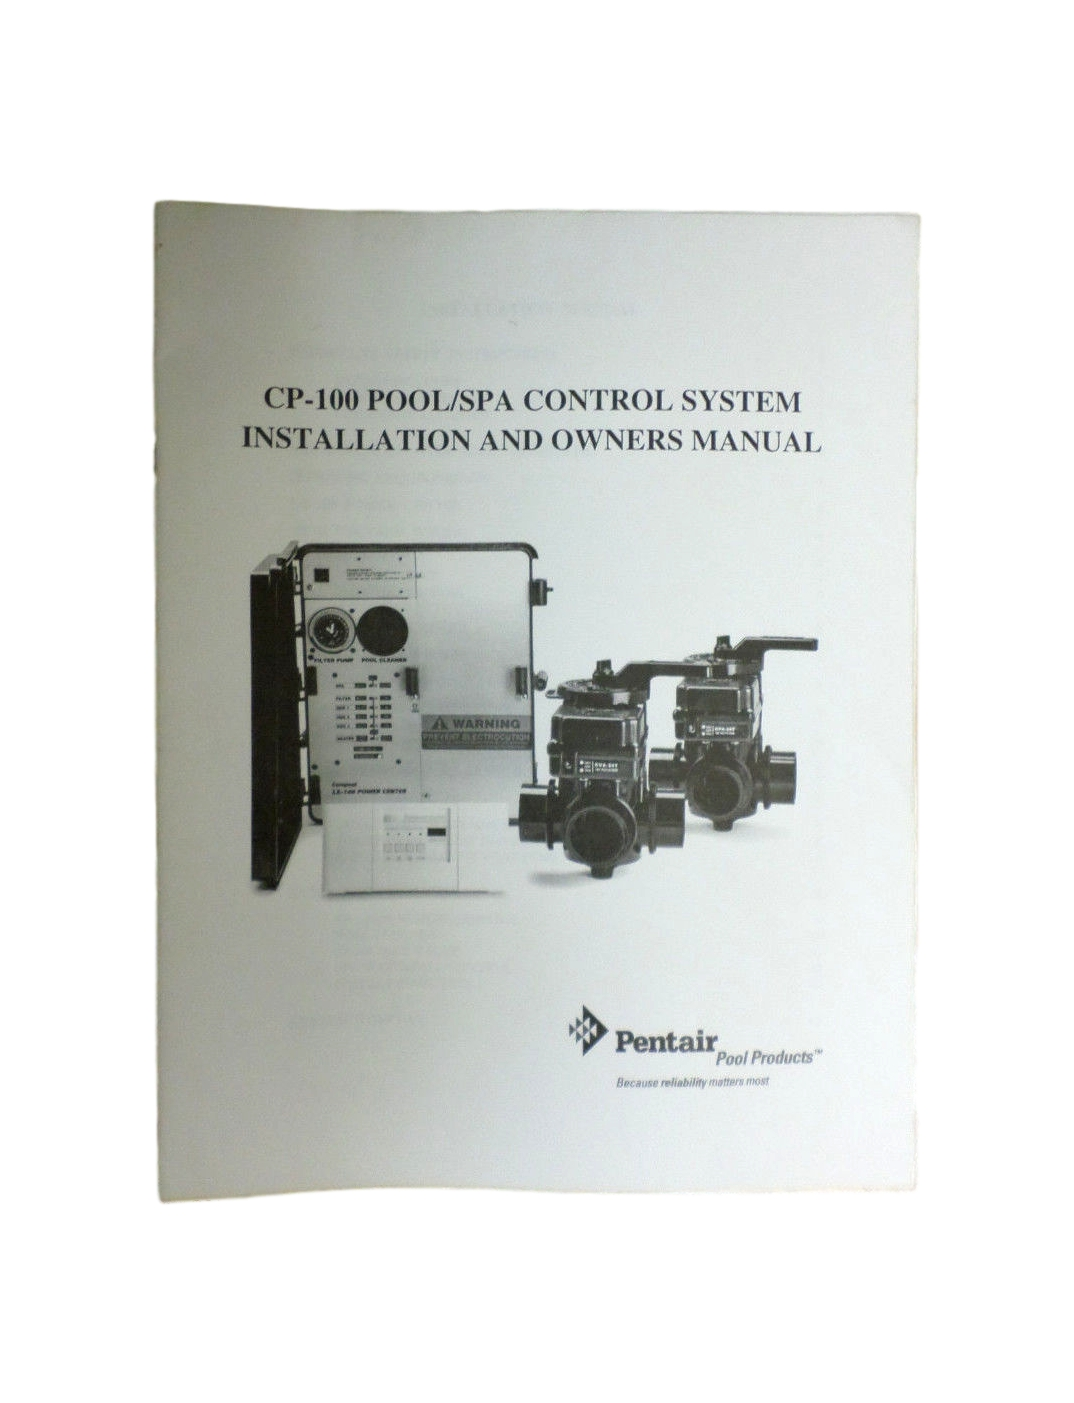 Details about Pentair CP-100 Pool/Spa Control System Original Owners Manual  Installation Guide